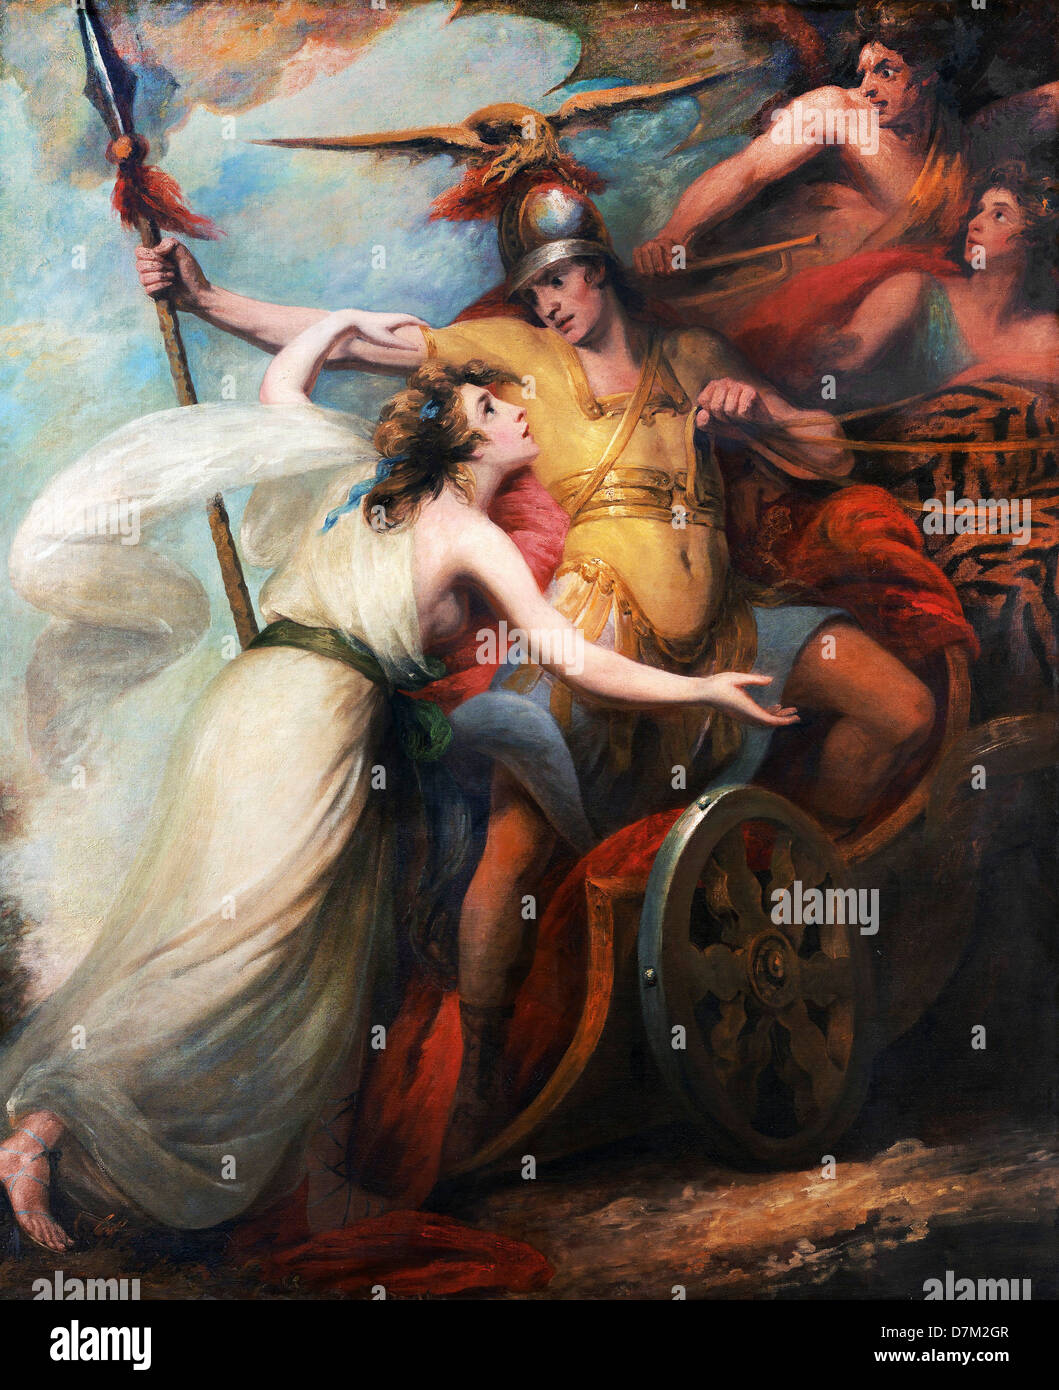 William Artaud, 'The Triumph of Mercy,' from Collins' 'Ode To Mercy' 1788-1790 Oil on canvas. Stock Photo